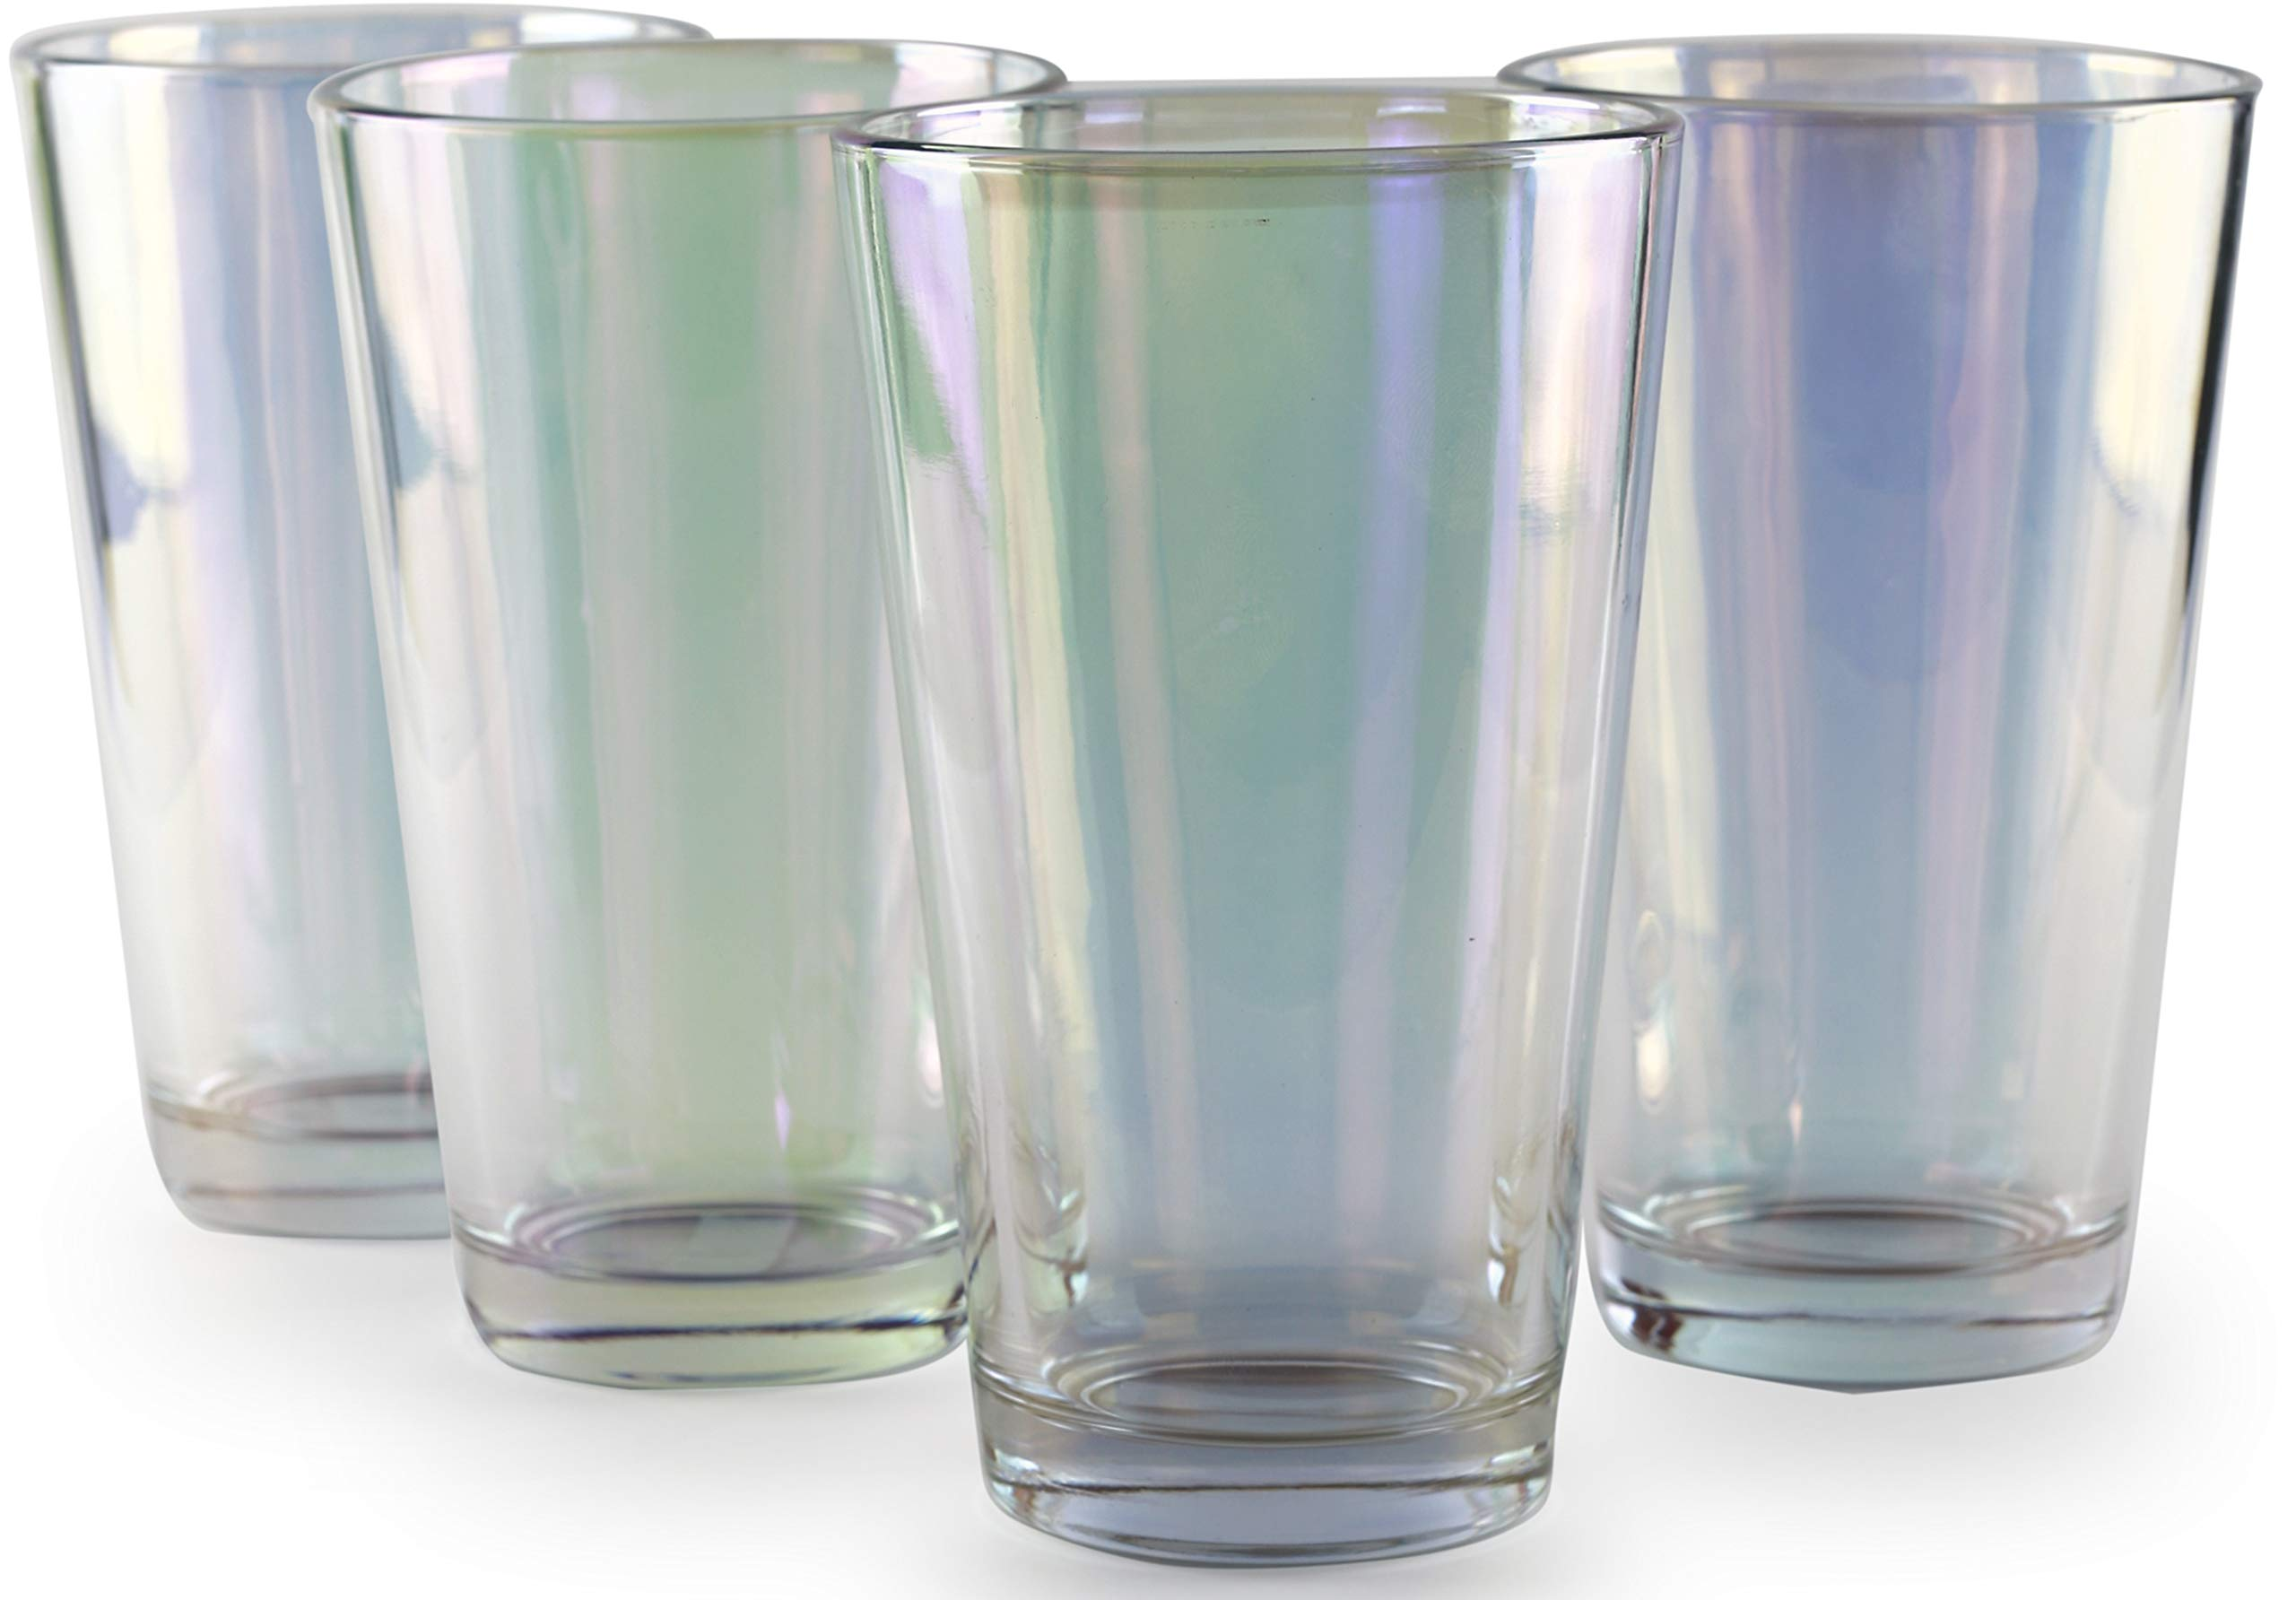 Circleware 76841 Radiance Set of 4 Heavy Base Highball Cooler Drinking Glasses Beverage Tumbler, 15.75 oz, Cups for Water, Juice, Milk, Beer, Ice Tea and Farmhouse Decor 4pc White Pearl